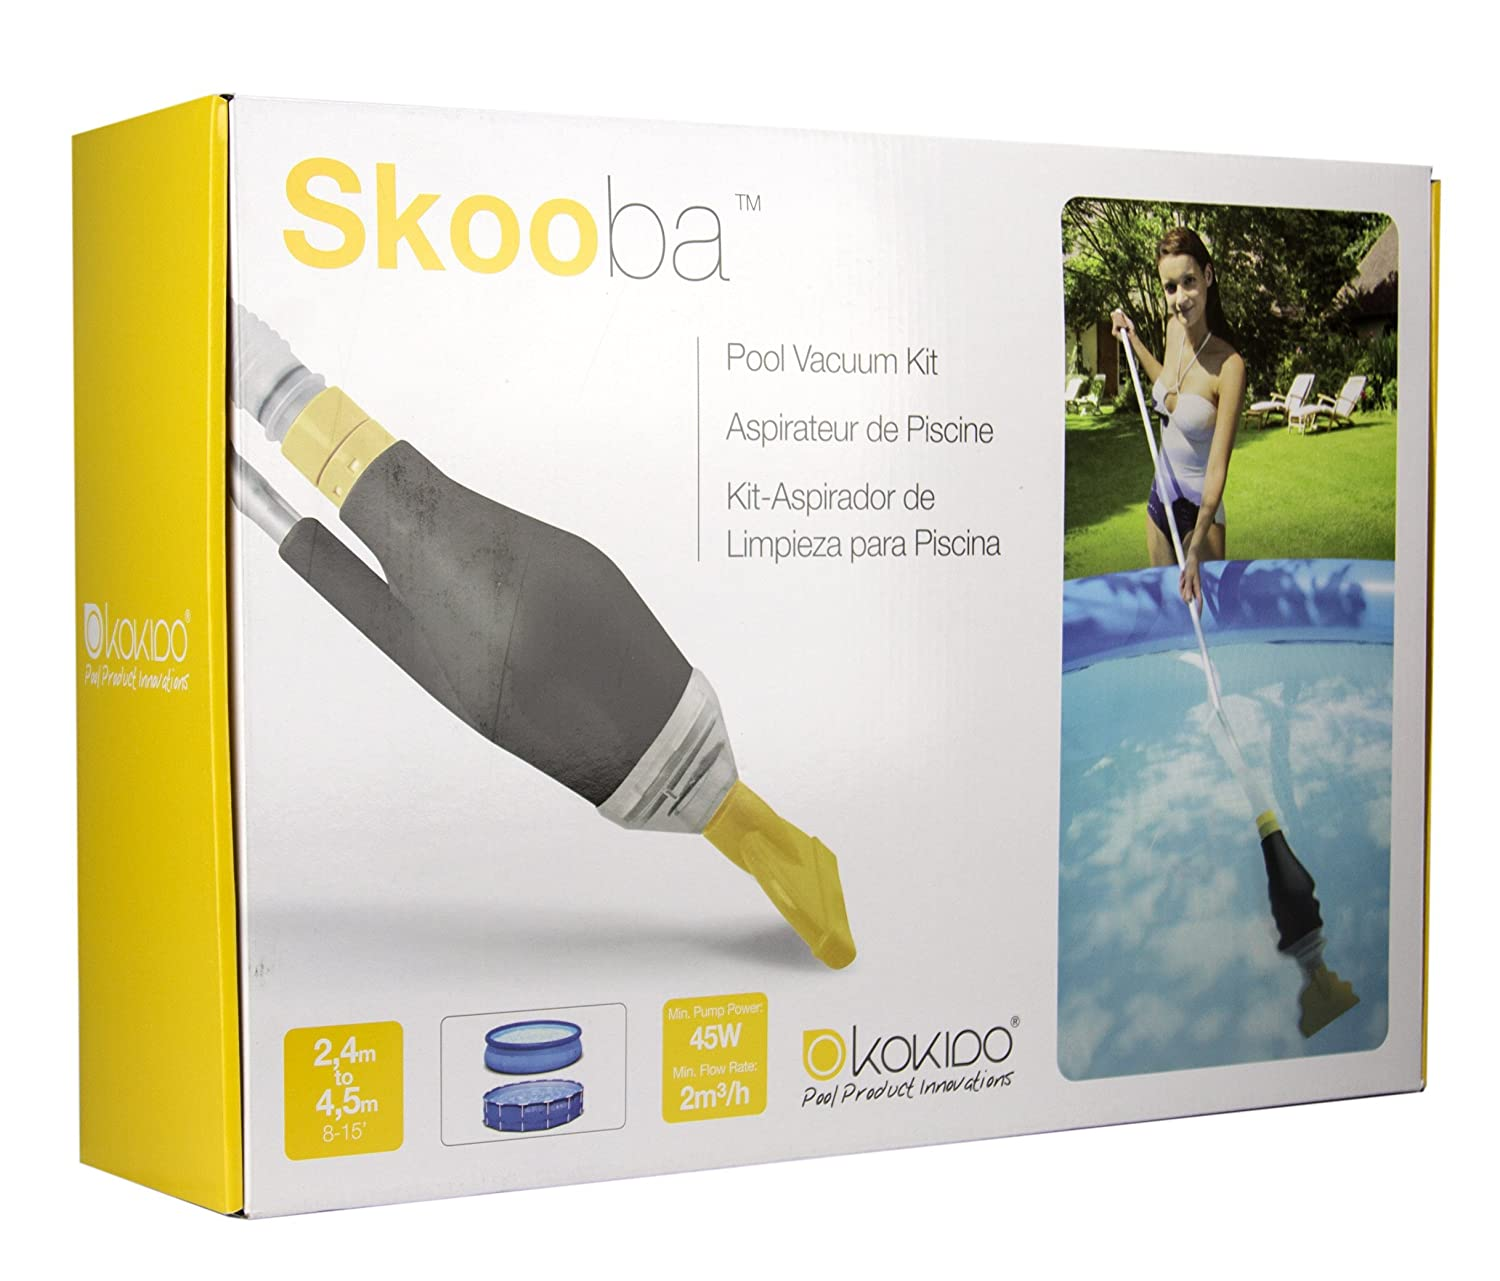 Amazon.com : Kokido Skooba Vac Above Ground Swimming Pool Vacuum Cleaner for Intex Pools : Swimming Pool Handheld Vacuums : Garden & Outdoor